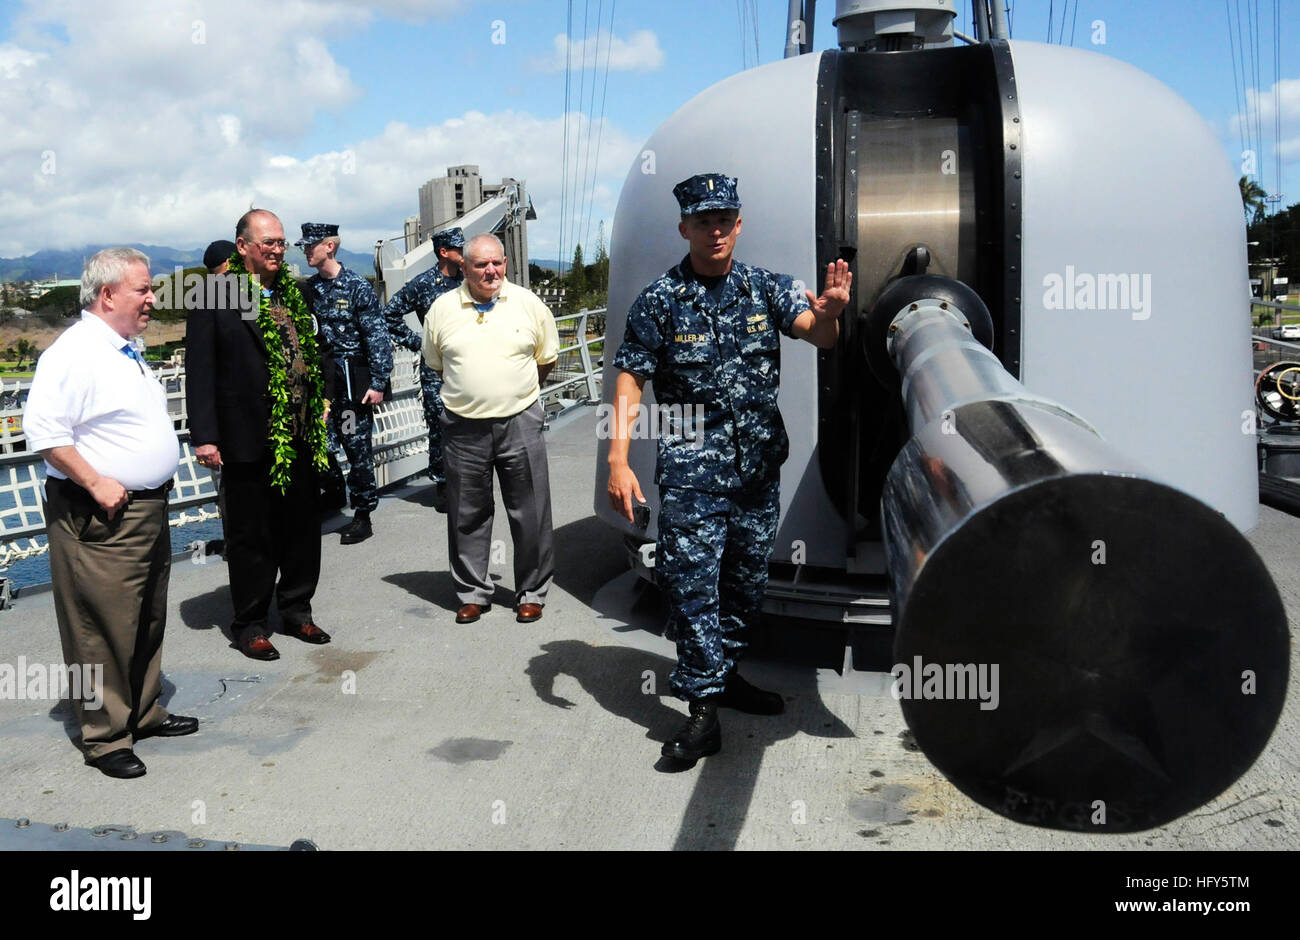 100426-N-7498L-144 PEARL HARBOR (April 26, 2010) Ensign Ray Miller IV gives a tour to Medal of Honor recipients aboard the guided-missile frigate USS Crommelin (FFG 37). Medal of Honor recipients Sgt. Maj. Kenneth E. Stumpf, Sgt. Maj. Allen J. Kellogg and Col. Donald E. Ballard are touring the western Pacific Region to talk to troops and to promote the book that reveals stories of many of the Medal of Honor recipients. (U.S. Navy photo by Mass Communication Specialist 2nd Class Mark Logico/Released) US Navy 100426-N-7498L-144 Ensign Ray Miller IV gives a tour to Medal of Honor recipients aboar Stock Photo